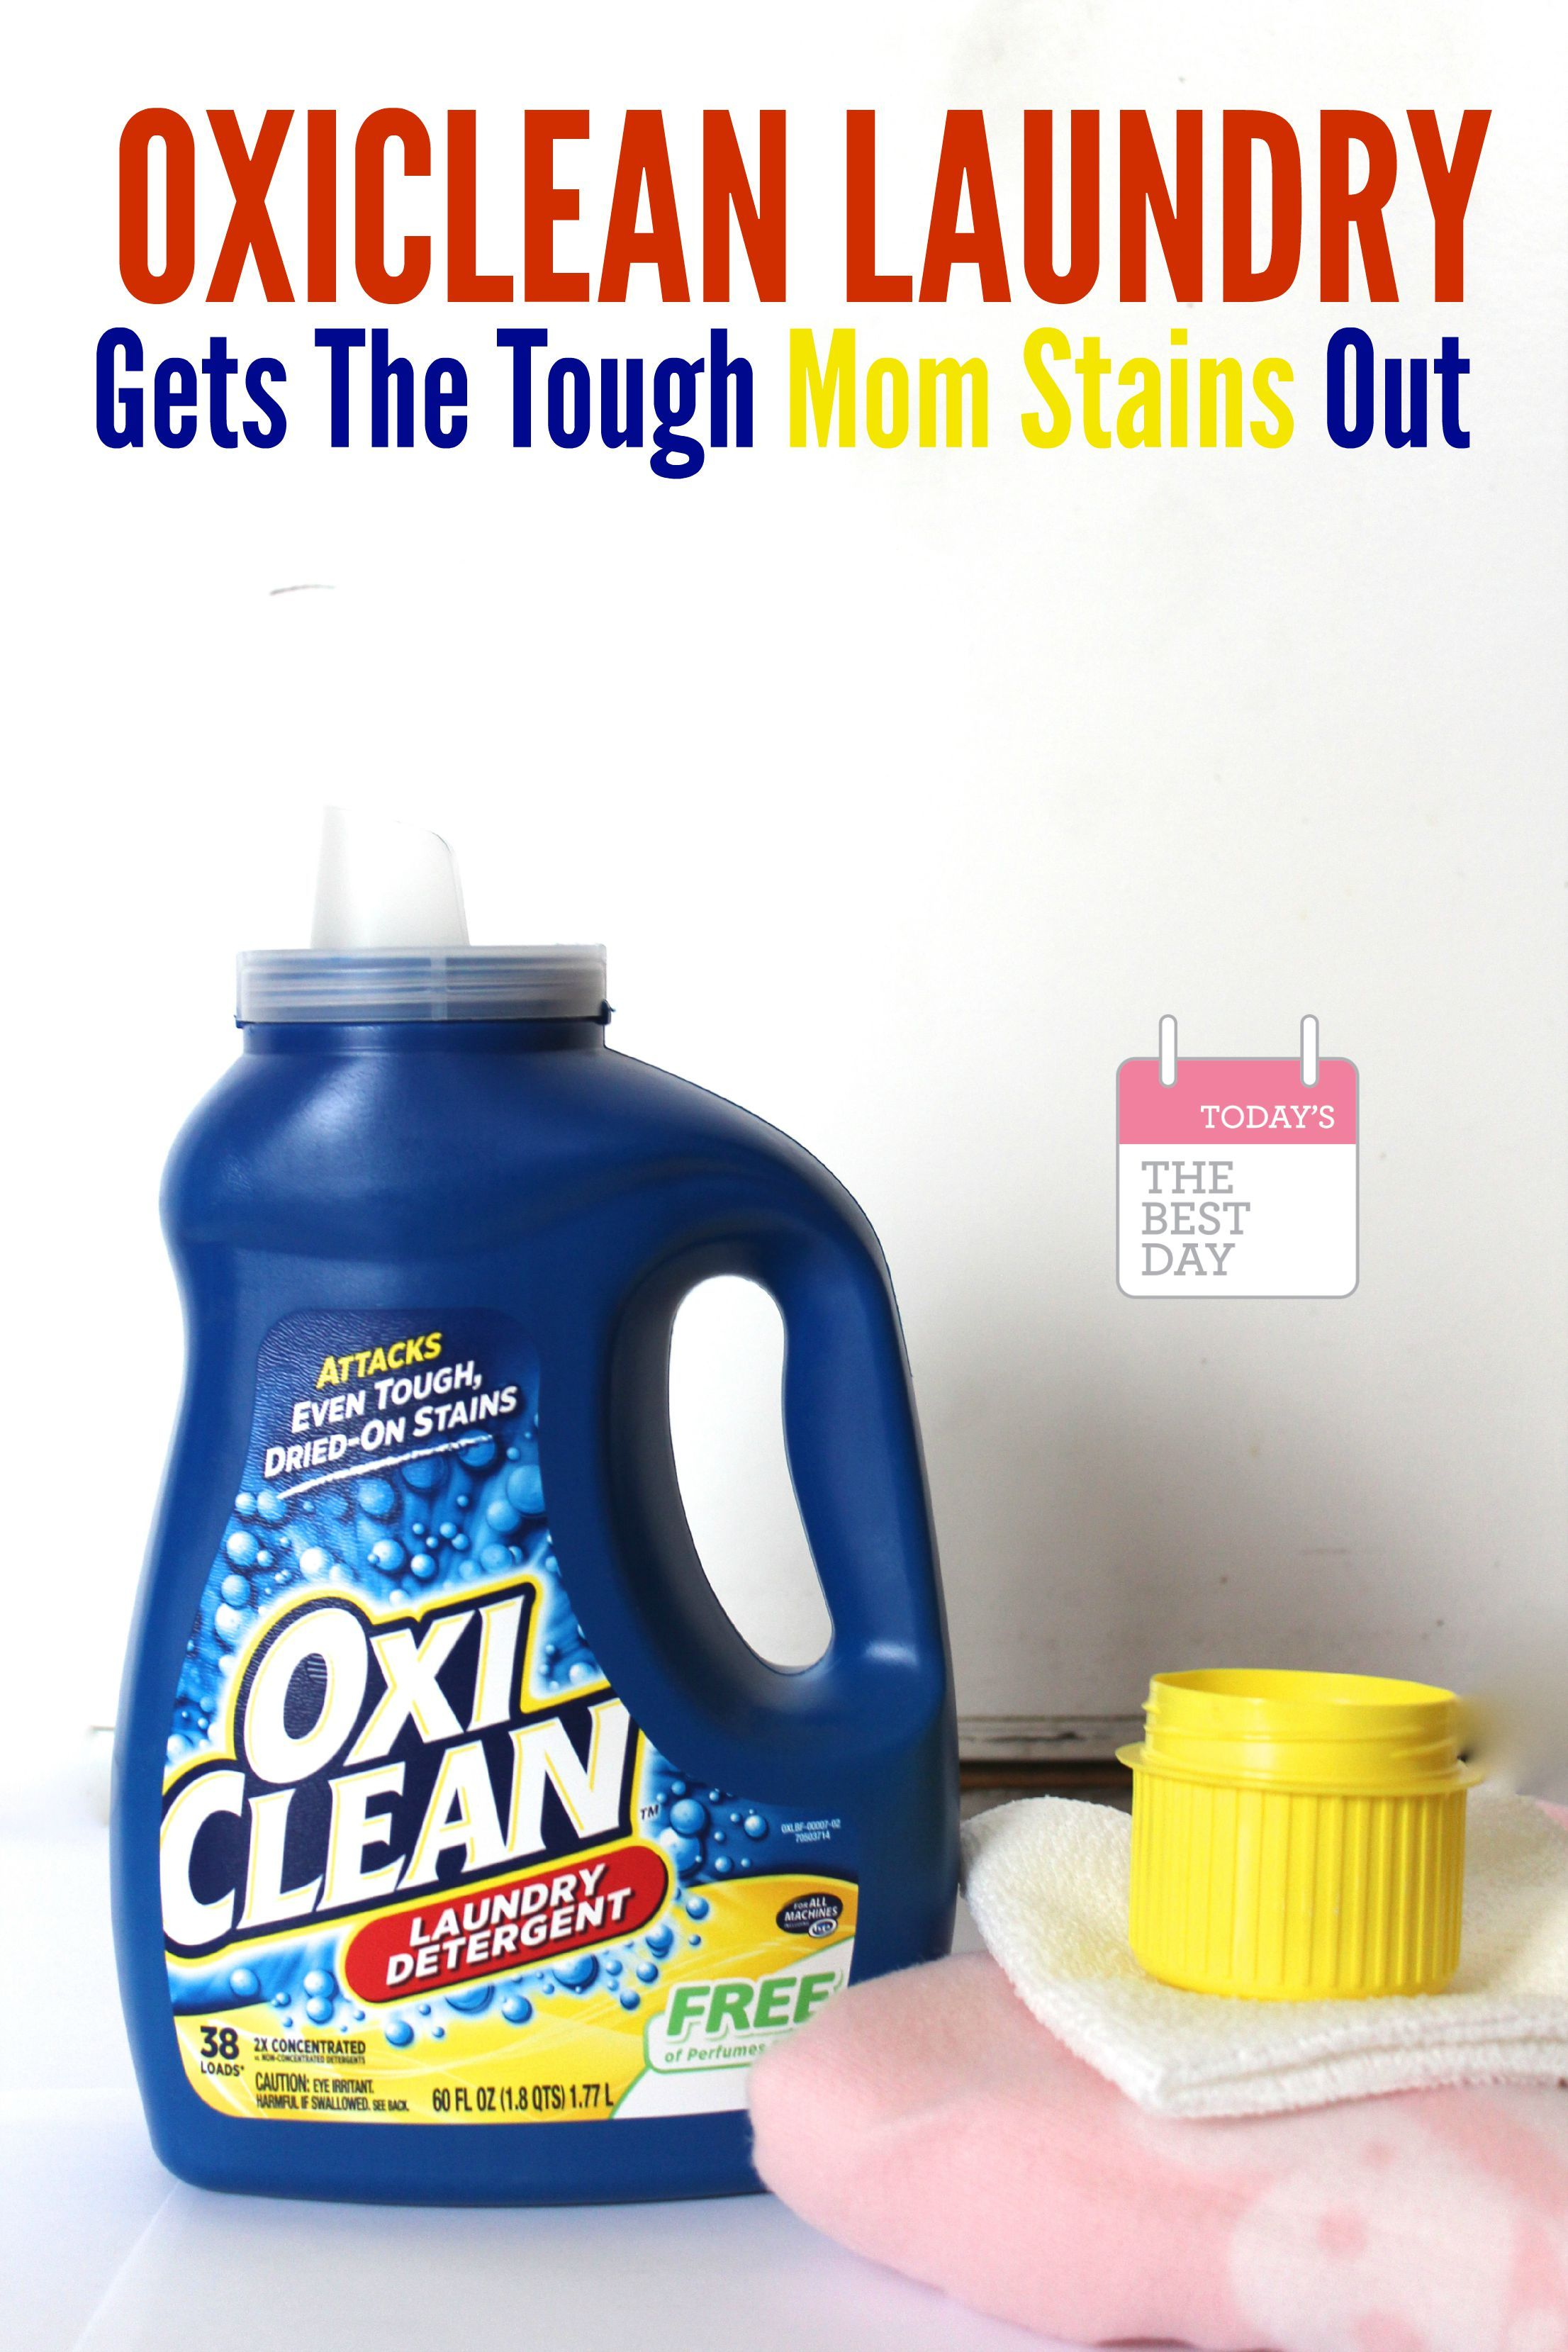 Oxiclean Laundry Gets The Tough Mom Stains Out Oxiclean